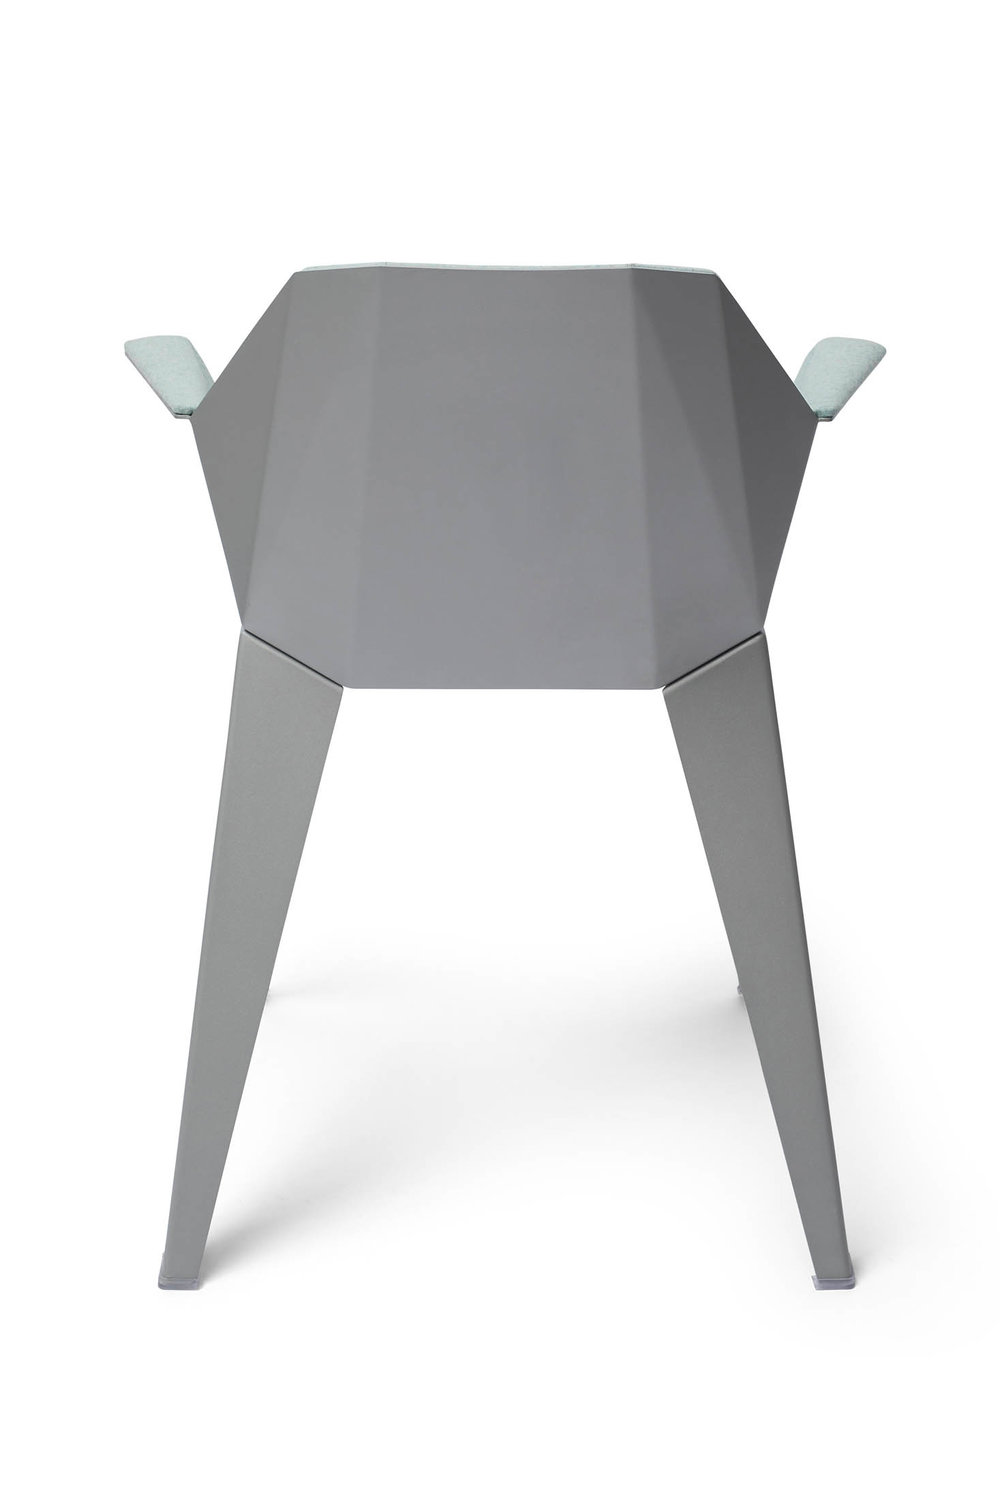 alumni-alpha-aluminum light-blue upholstered-back.jpg